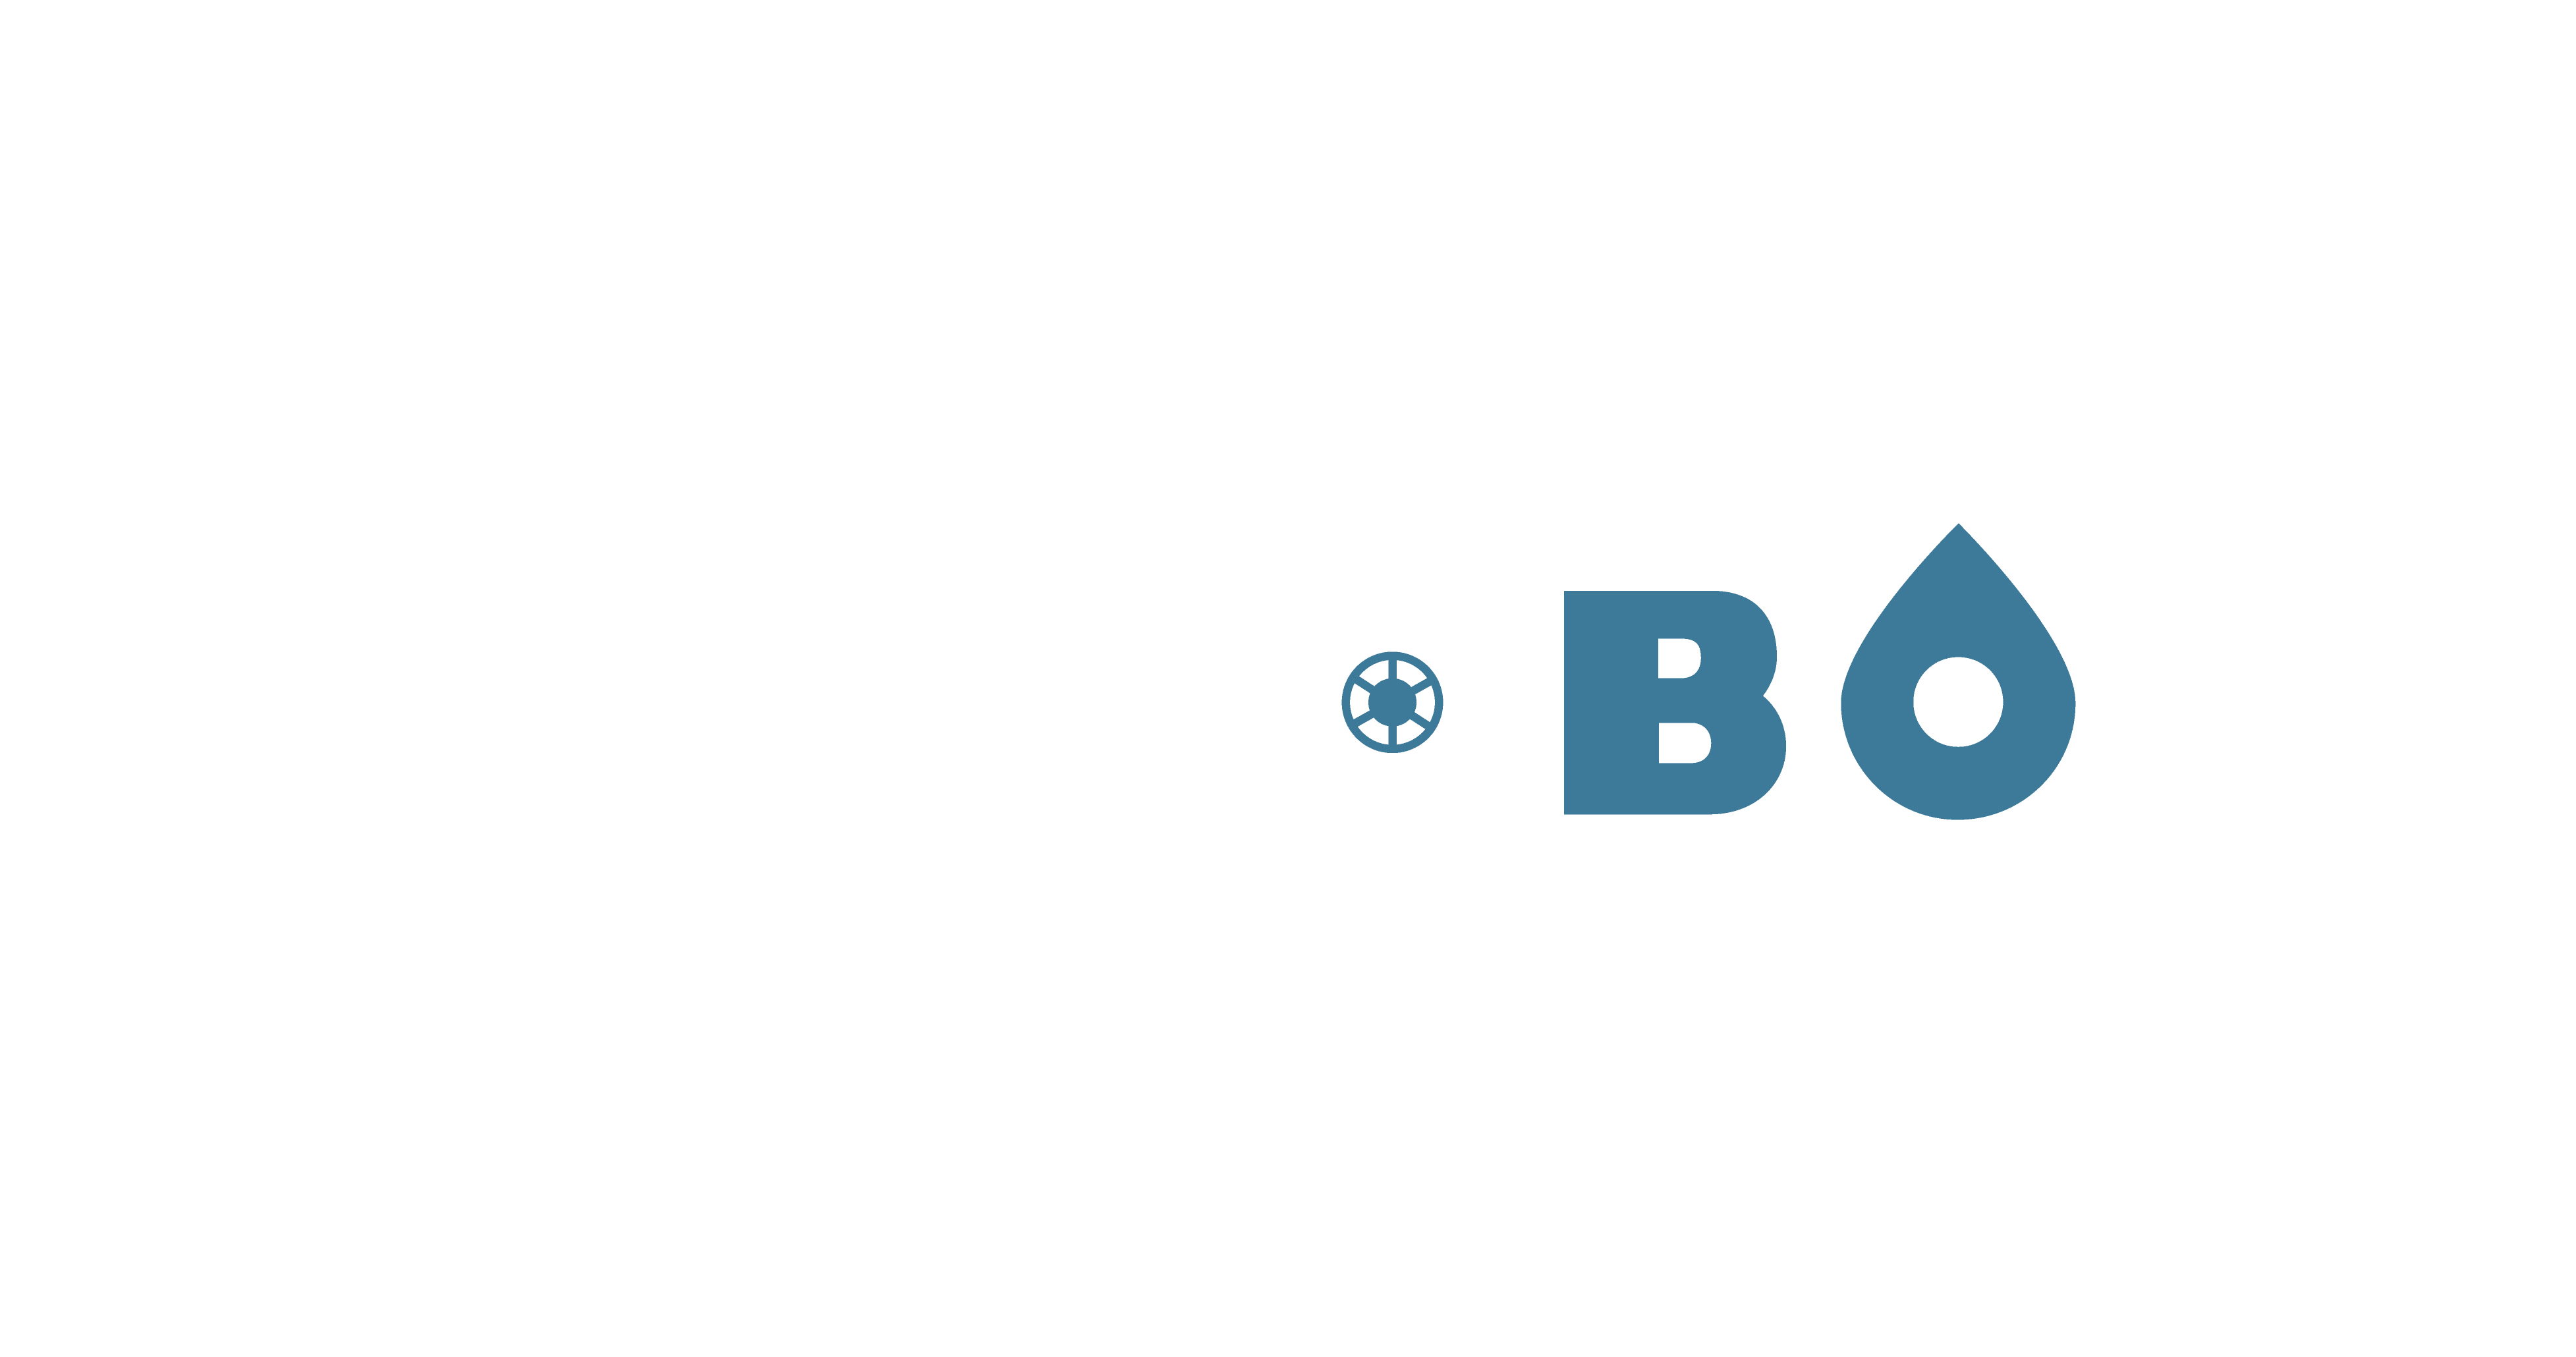 Idrobo Light